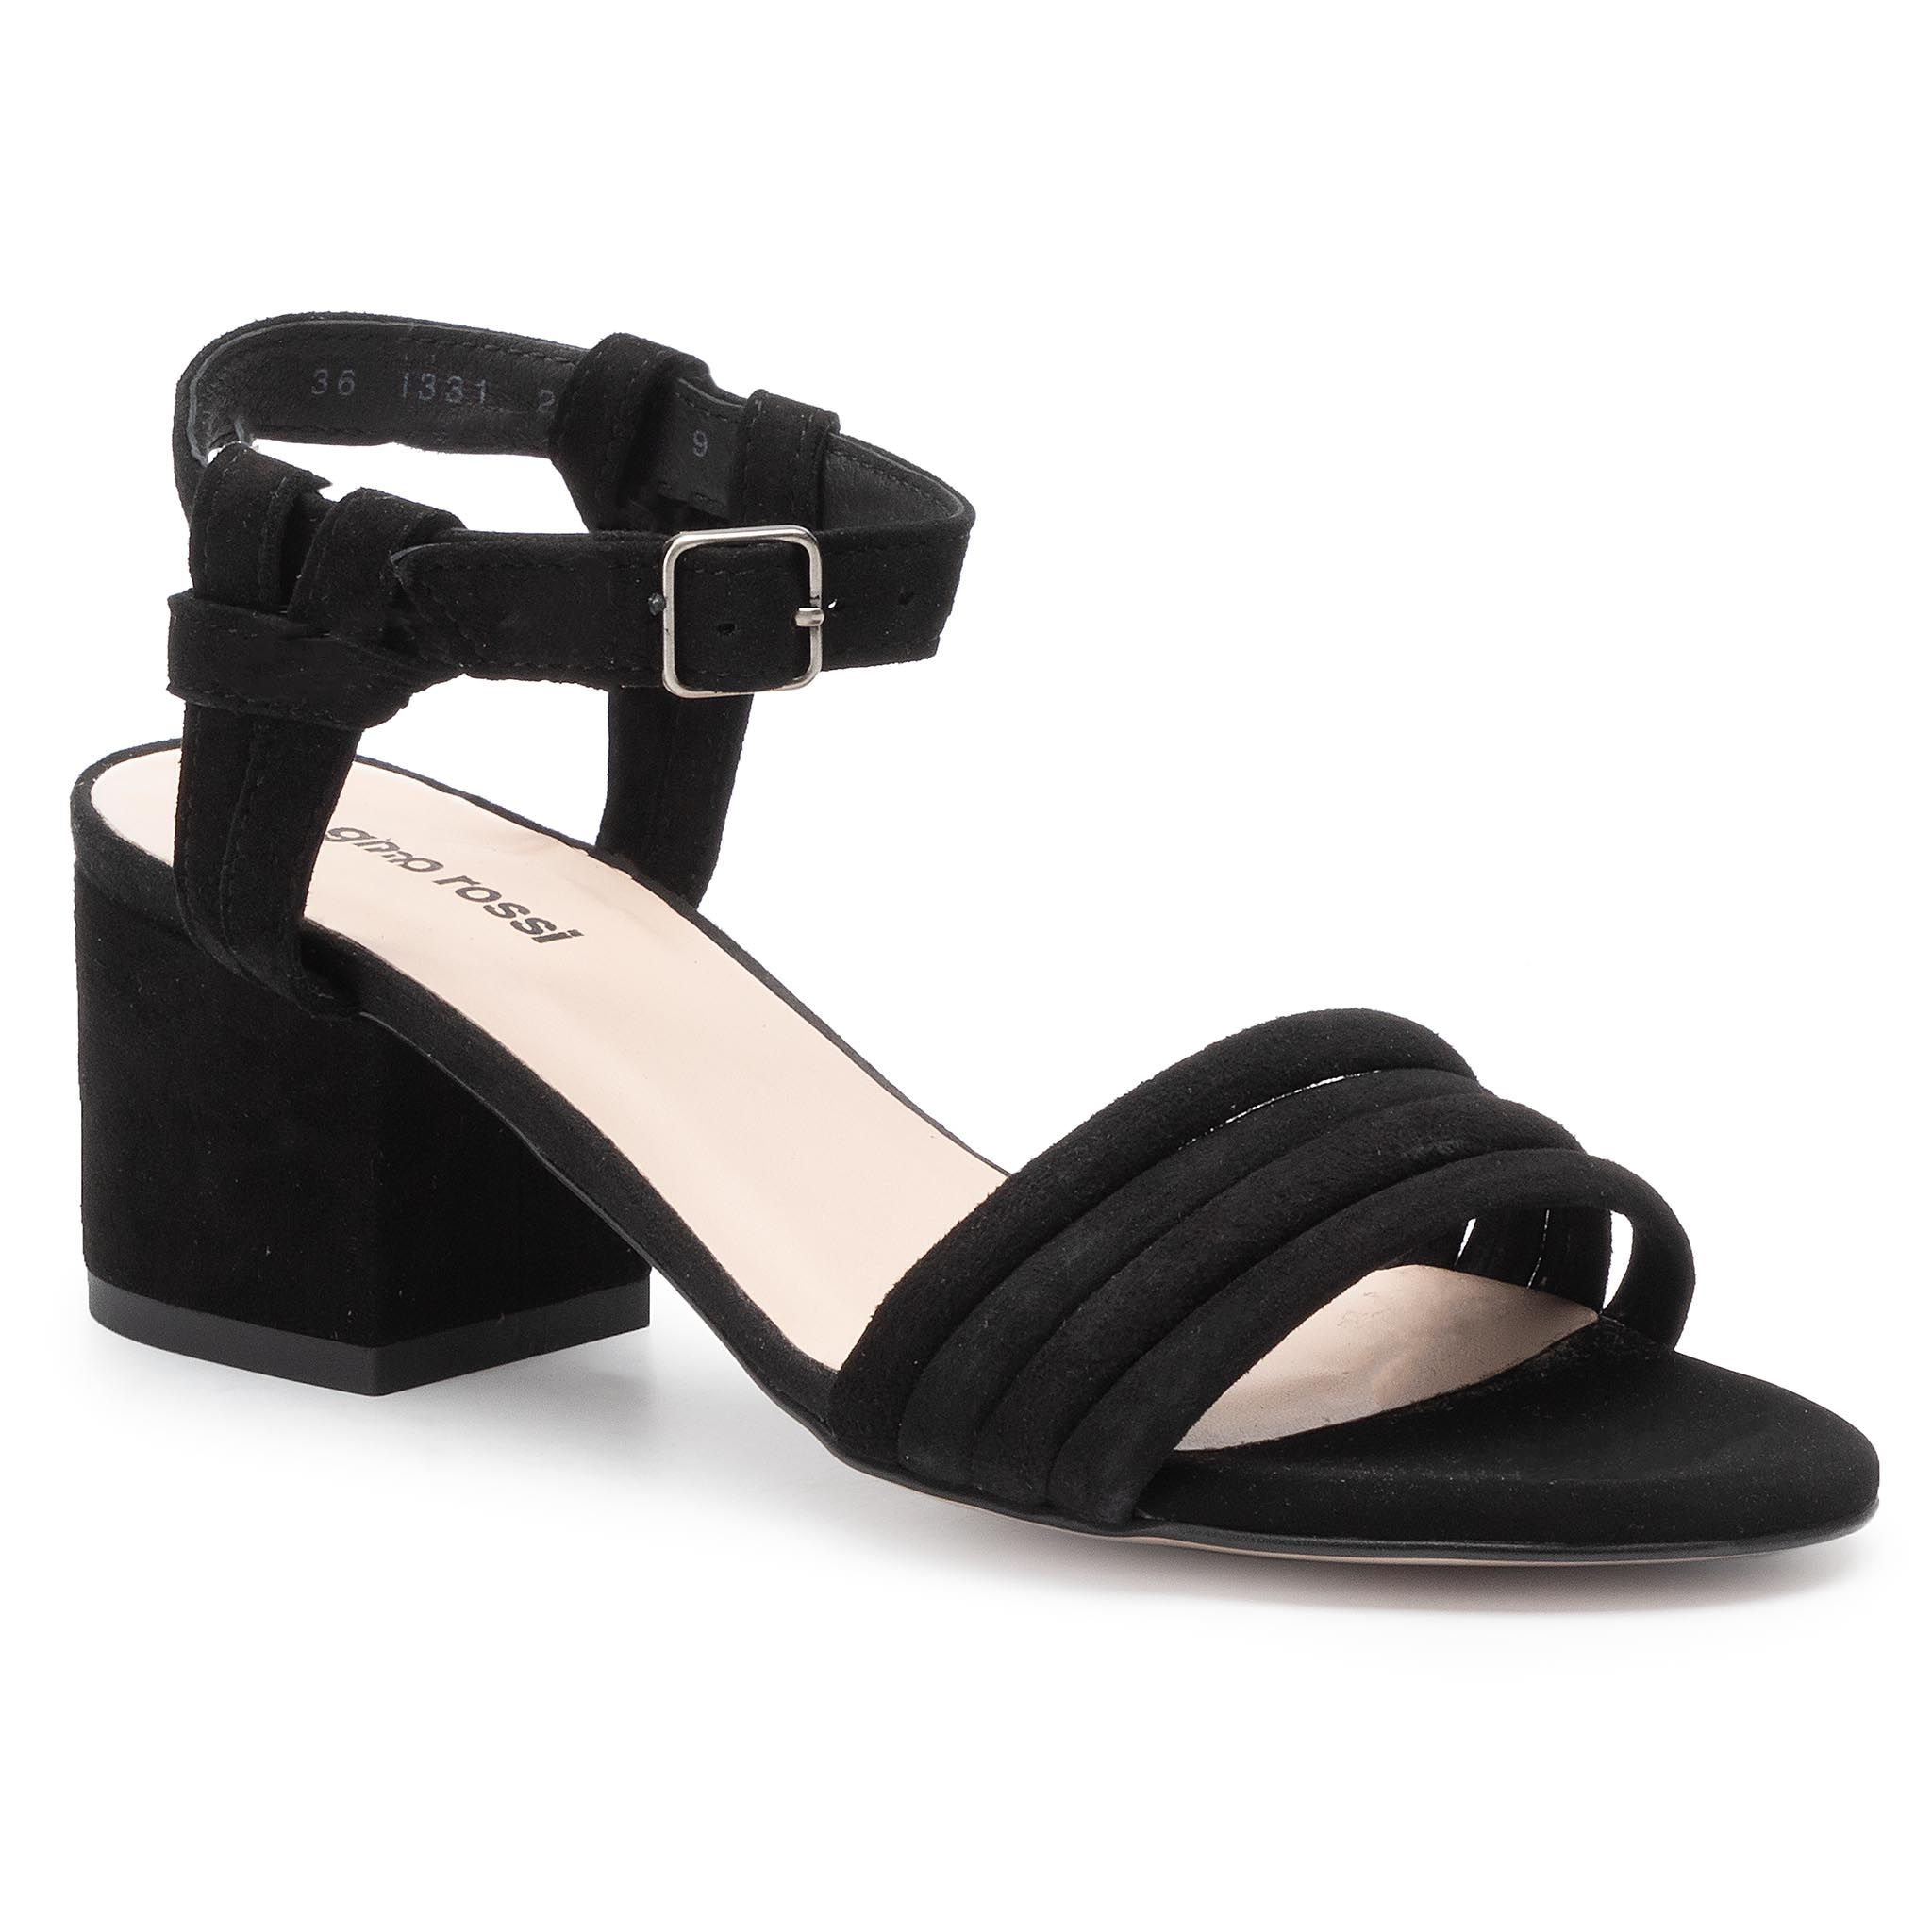 Sandales GINO ROSSI - Omi DNI331-BY9-4900-9900-0 99 - Chaussures.fr - Modalova